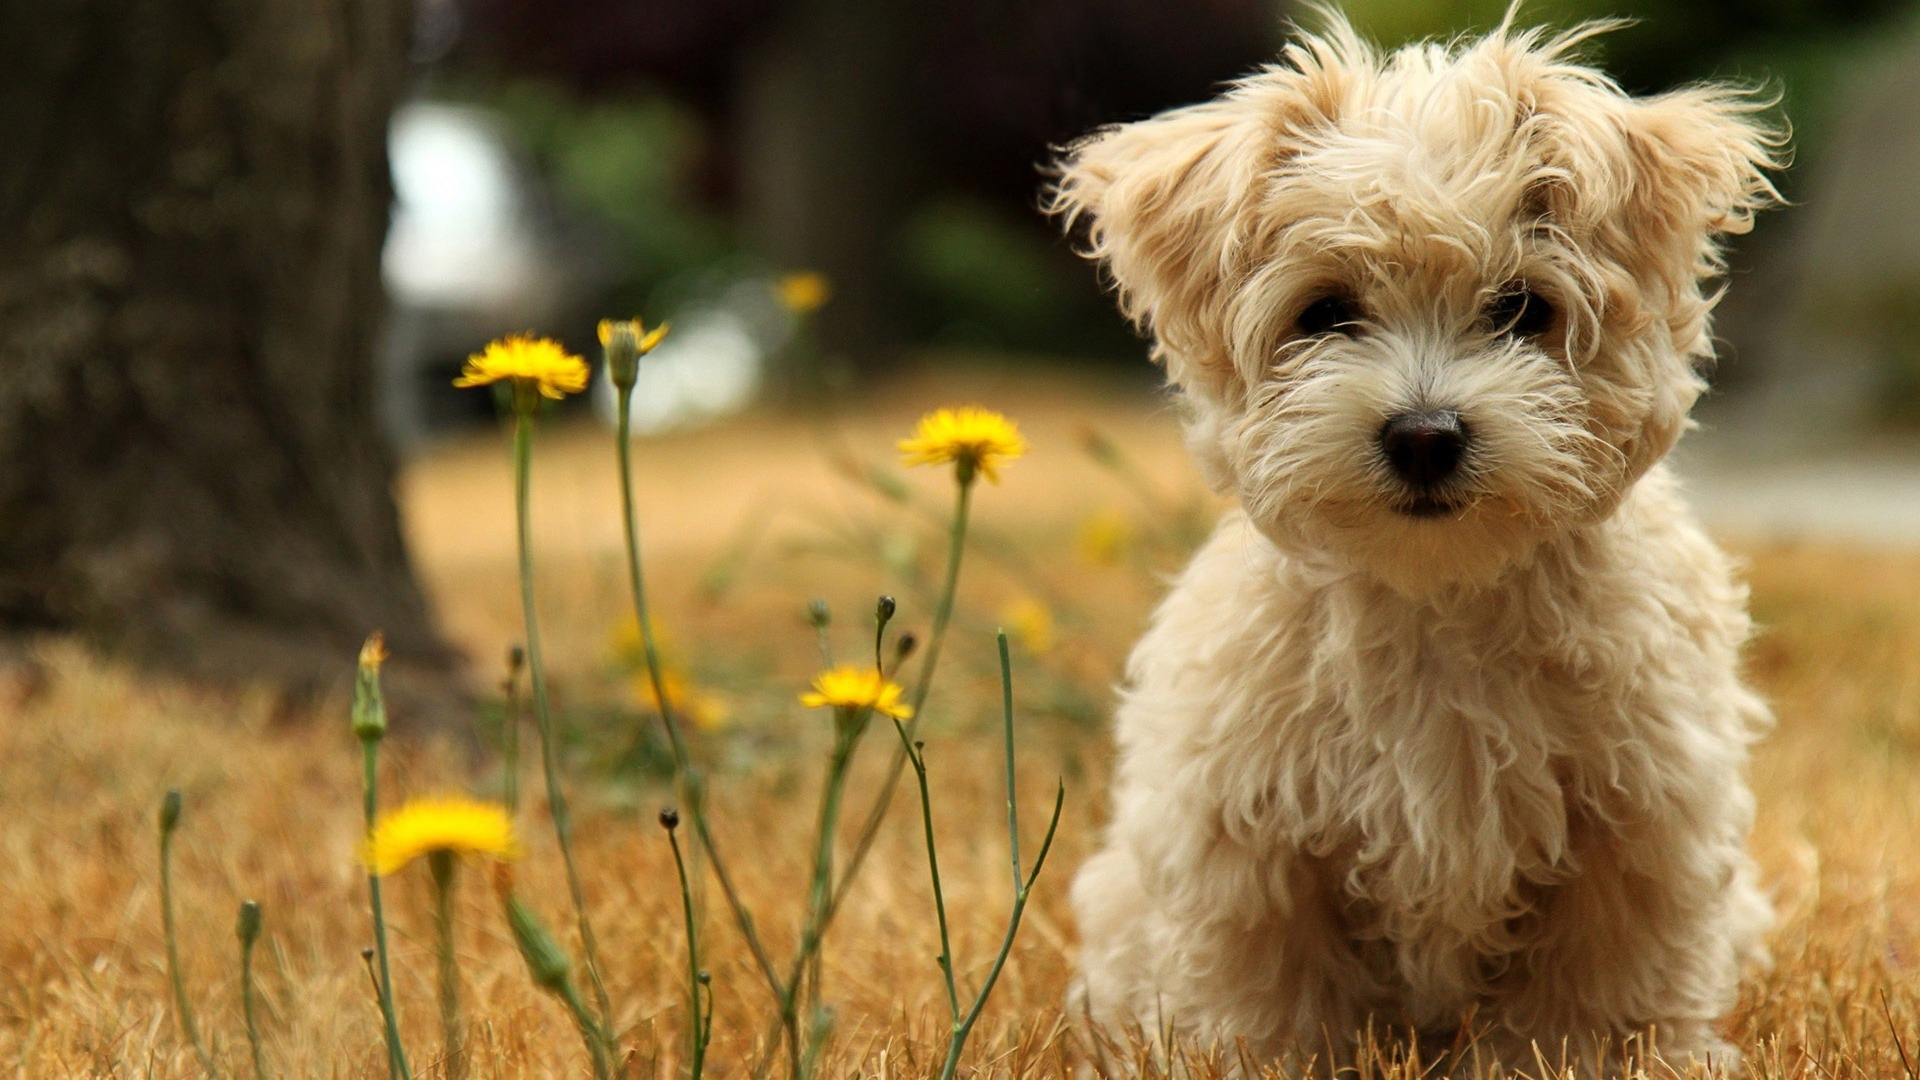 HD Cute Animal Wallpapers